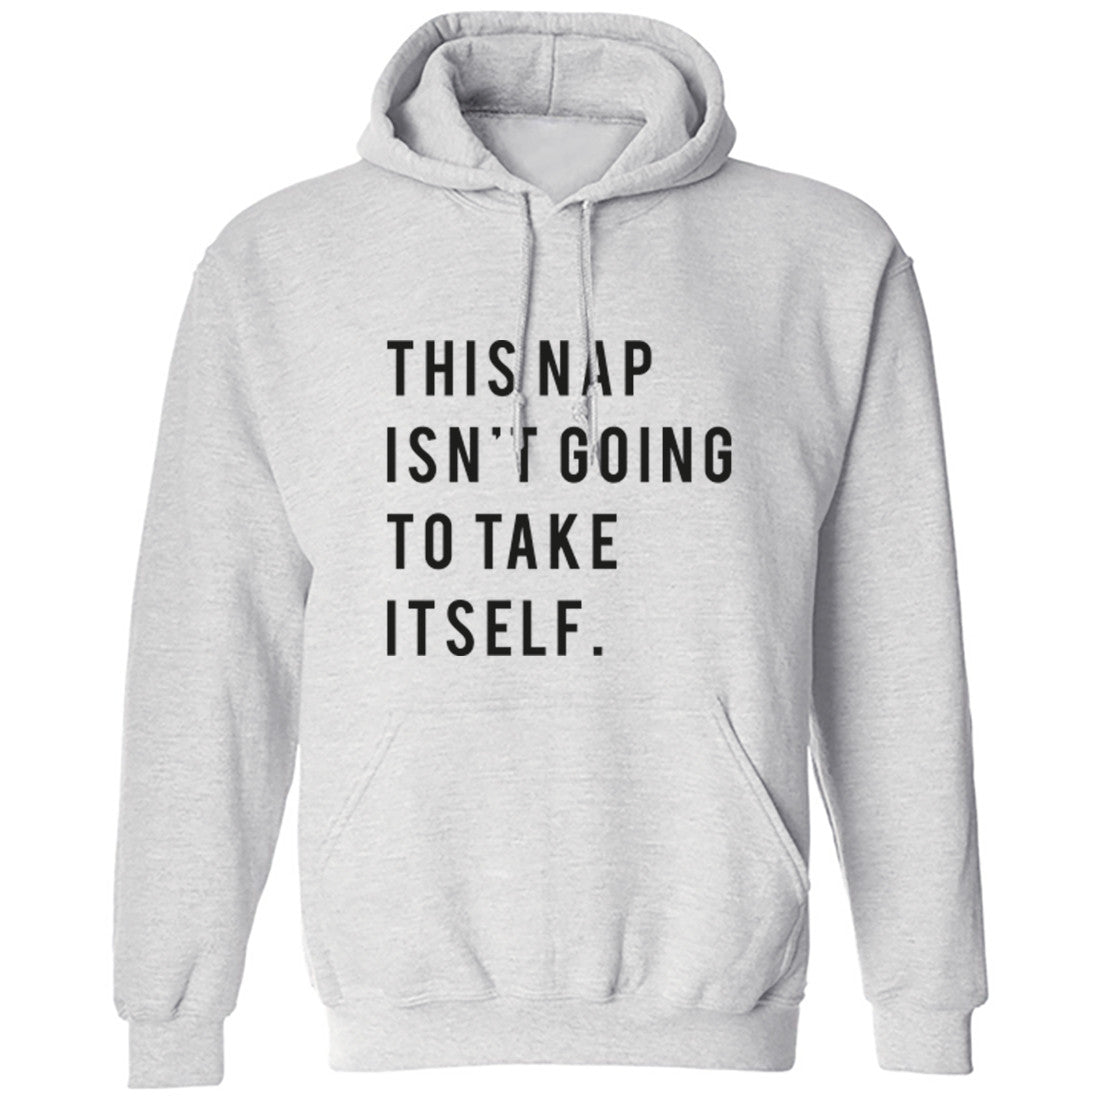 This Nap Isn't Going To Take Itself Unisex Hoodie K0192 - Illustrated Identity Ltd.